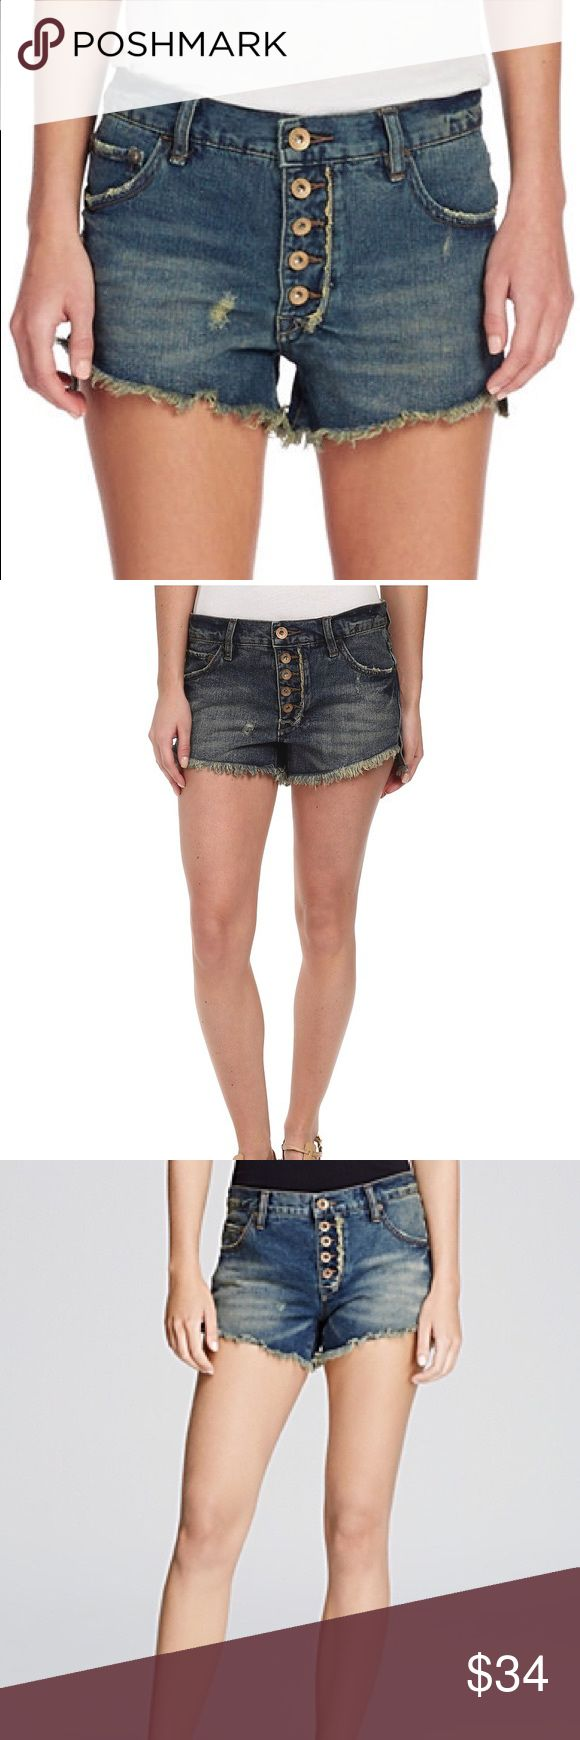 Free People Cut off Denim Shorts Jillian Blue B39 Free People Cutoff Denim Shorts Jillian Blue. 100% cotton. Button Fly. Daisy Dukes from Free People...could it get any better? Free People Shorts Jean Shorts